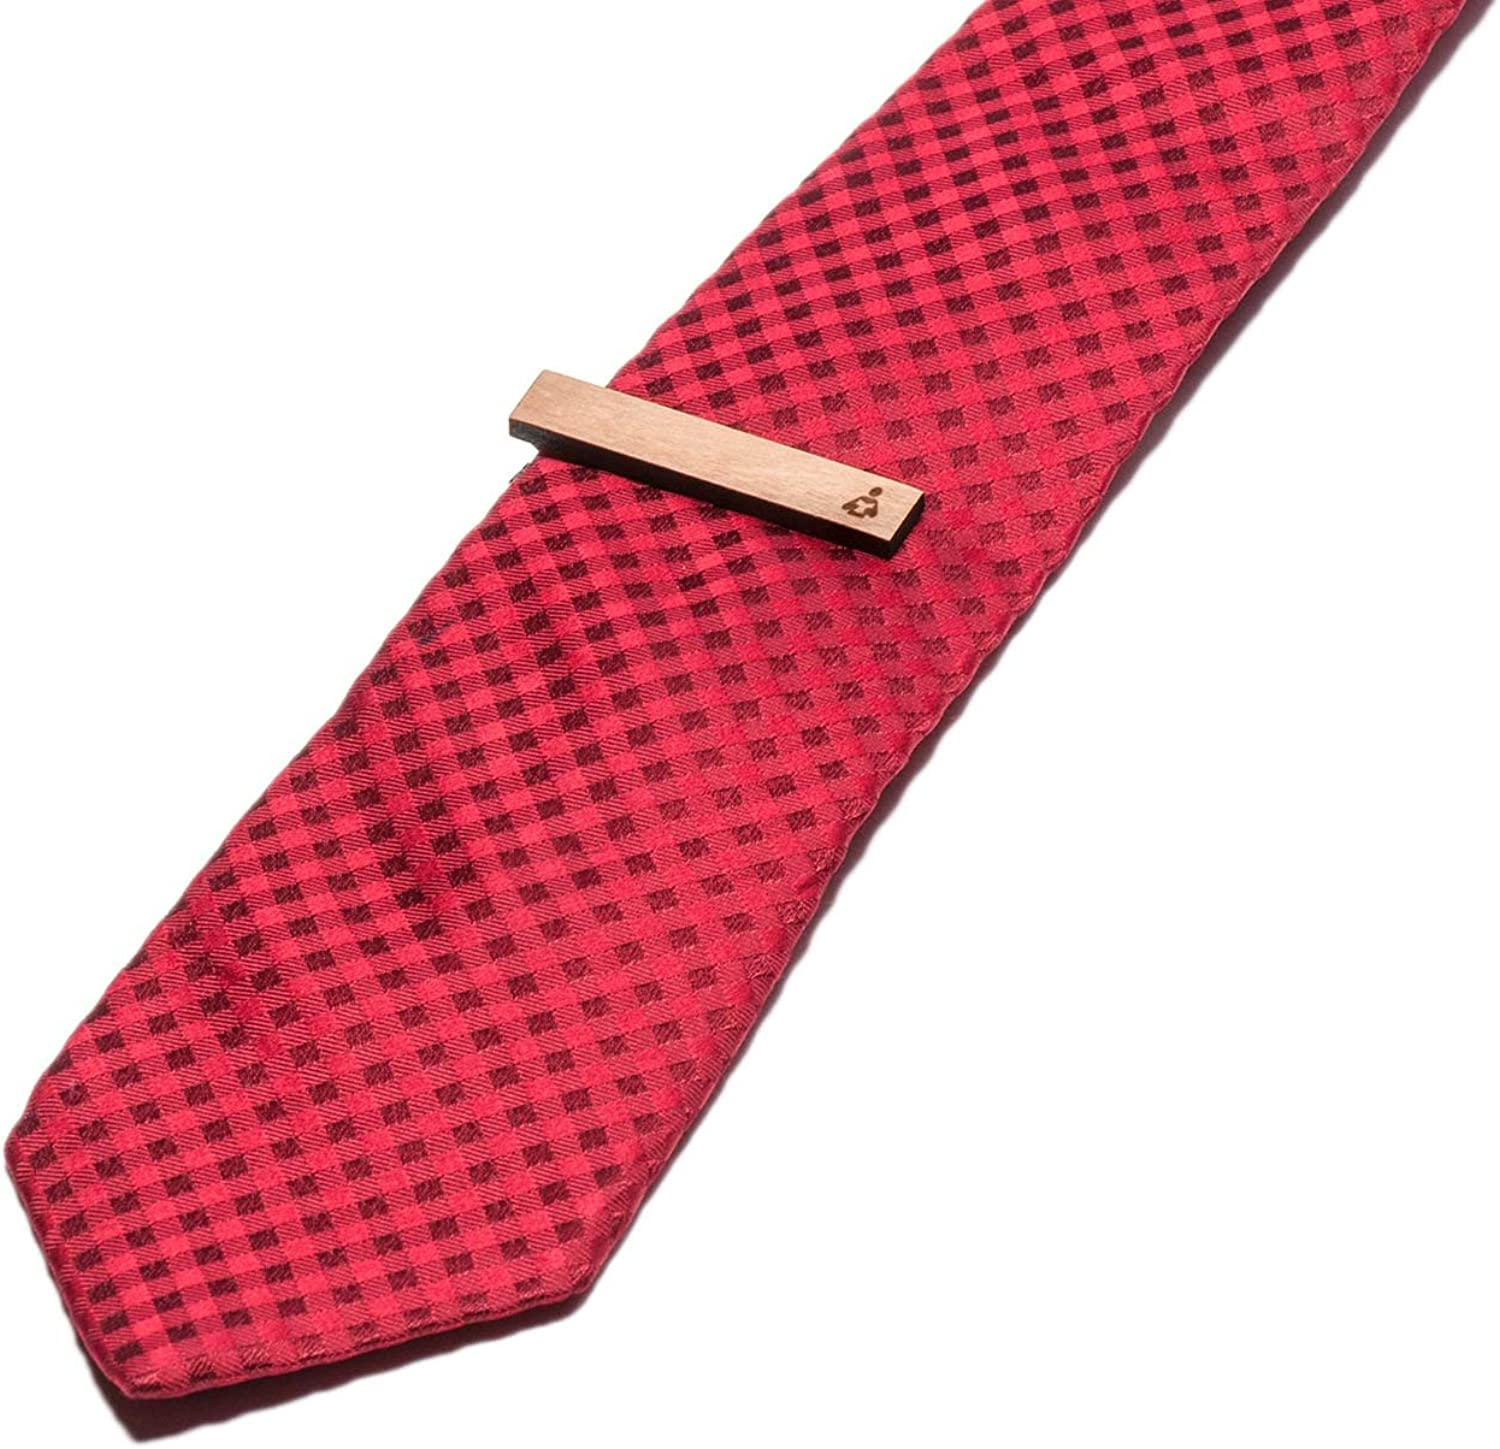 Wooden Accessories Company Wooden Tie Clips with Laser Engraved Reading Man Design Cherry Wood Tie Bar Engraved in The USA